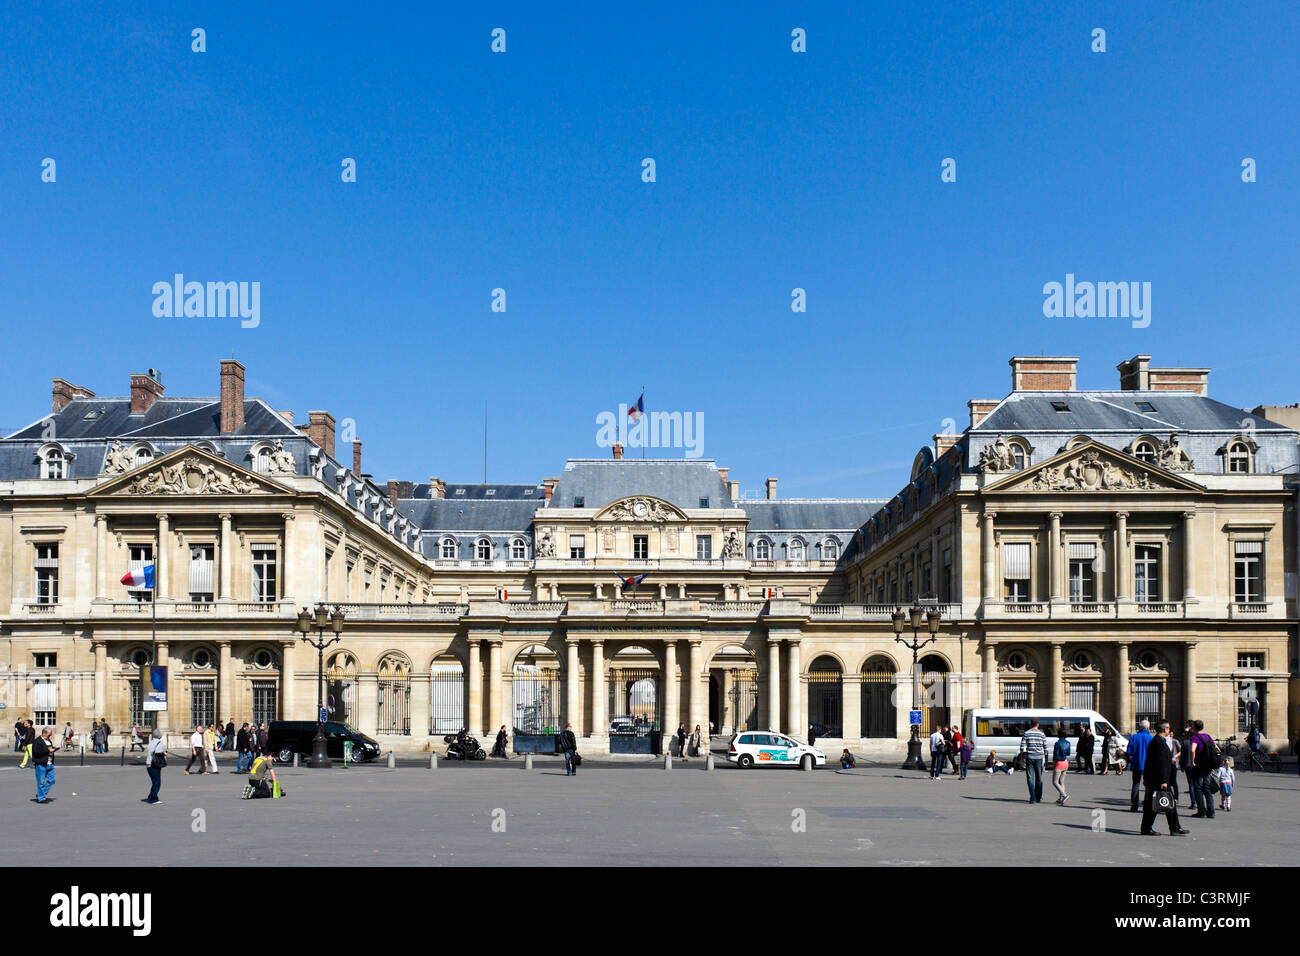 The Palais Royal, 1st Arrondissement, Paris, France - Stock Image